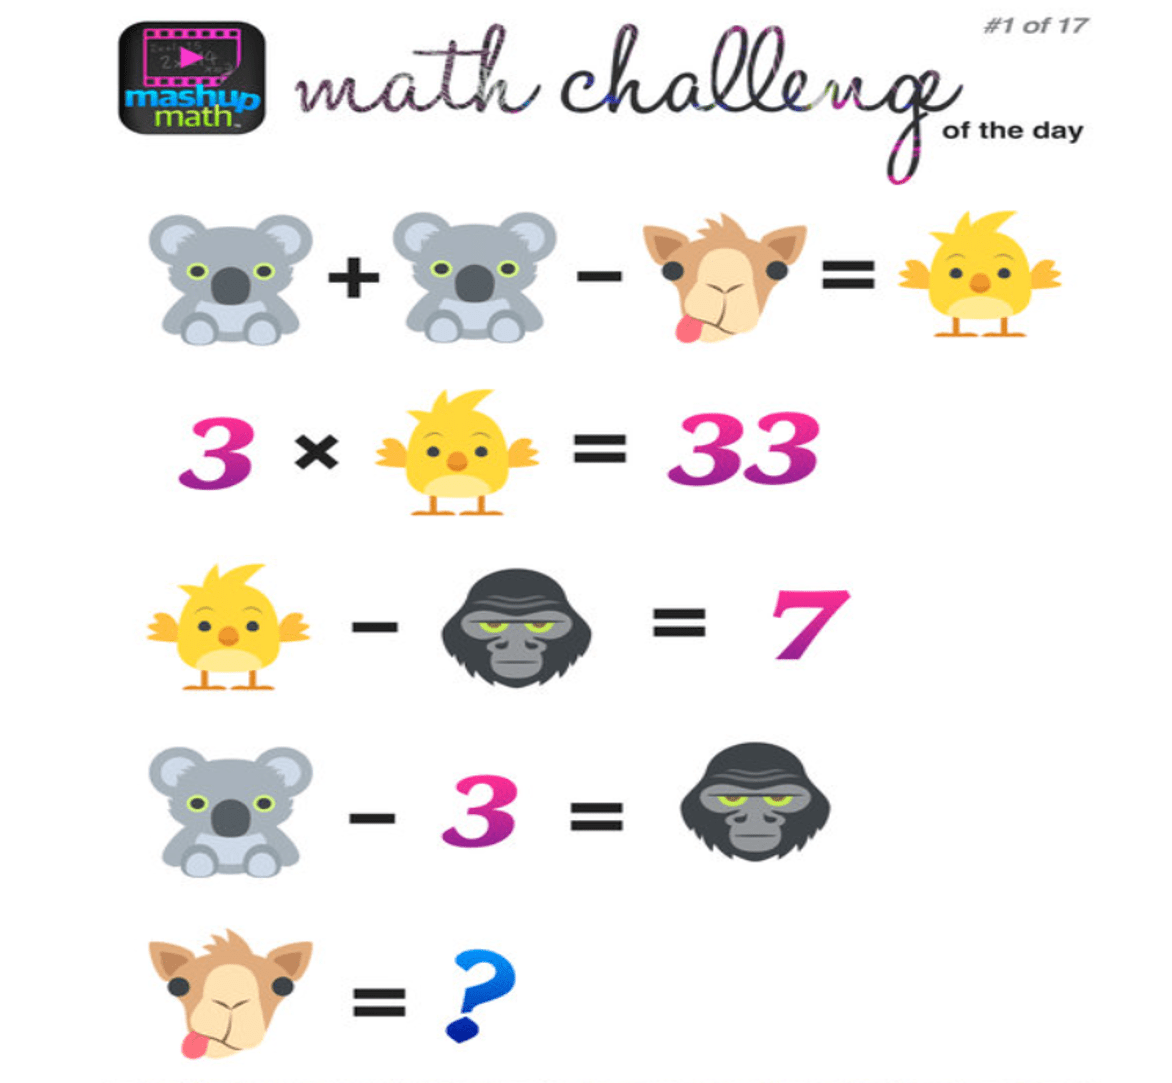 Awesome Math Challenges